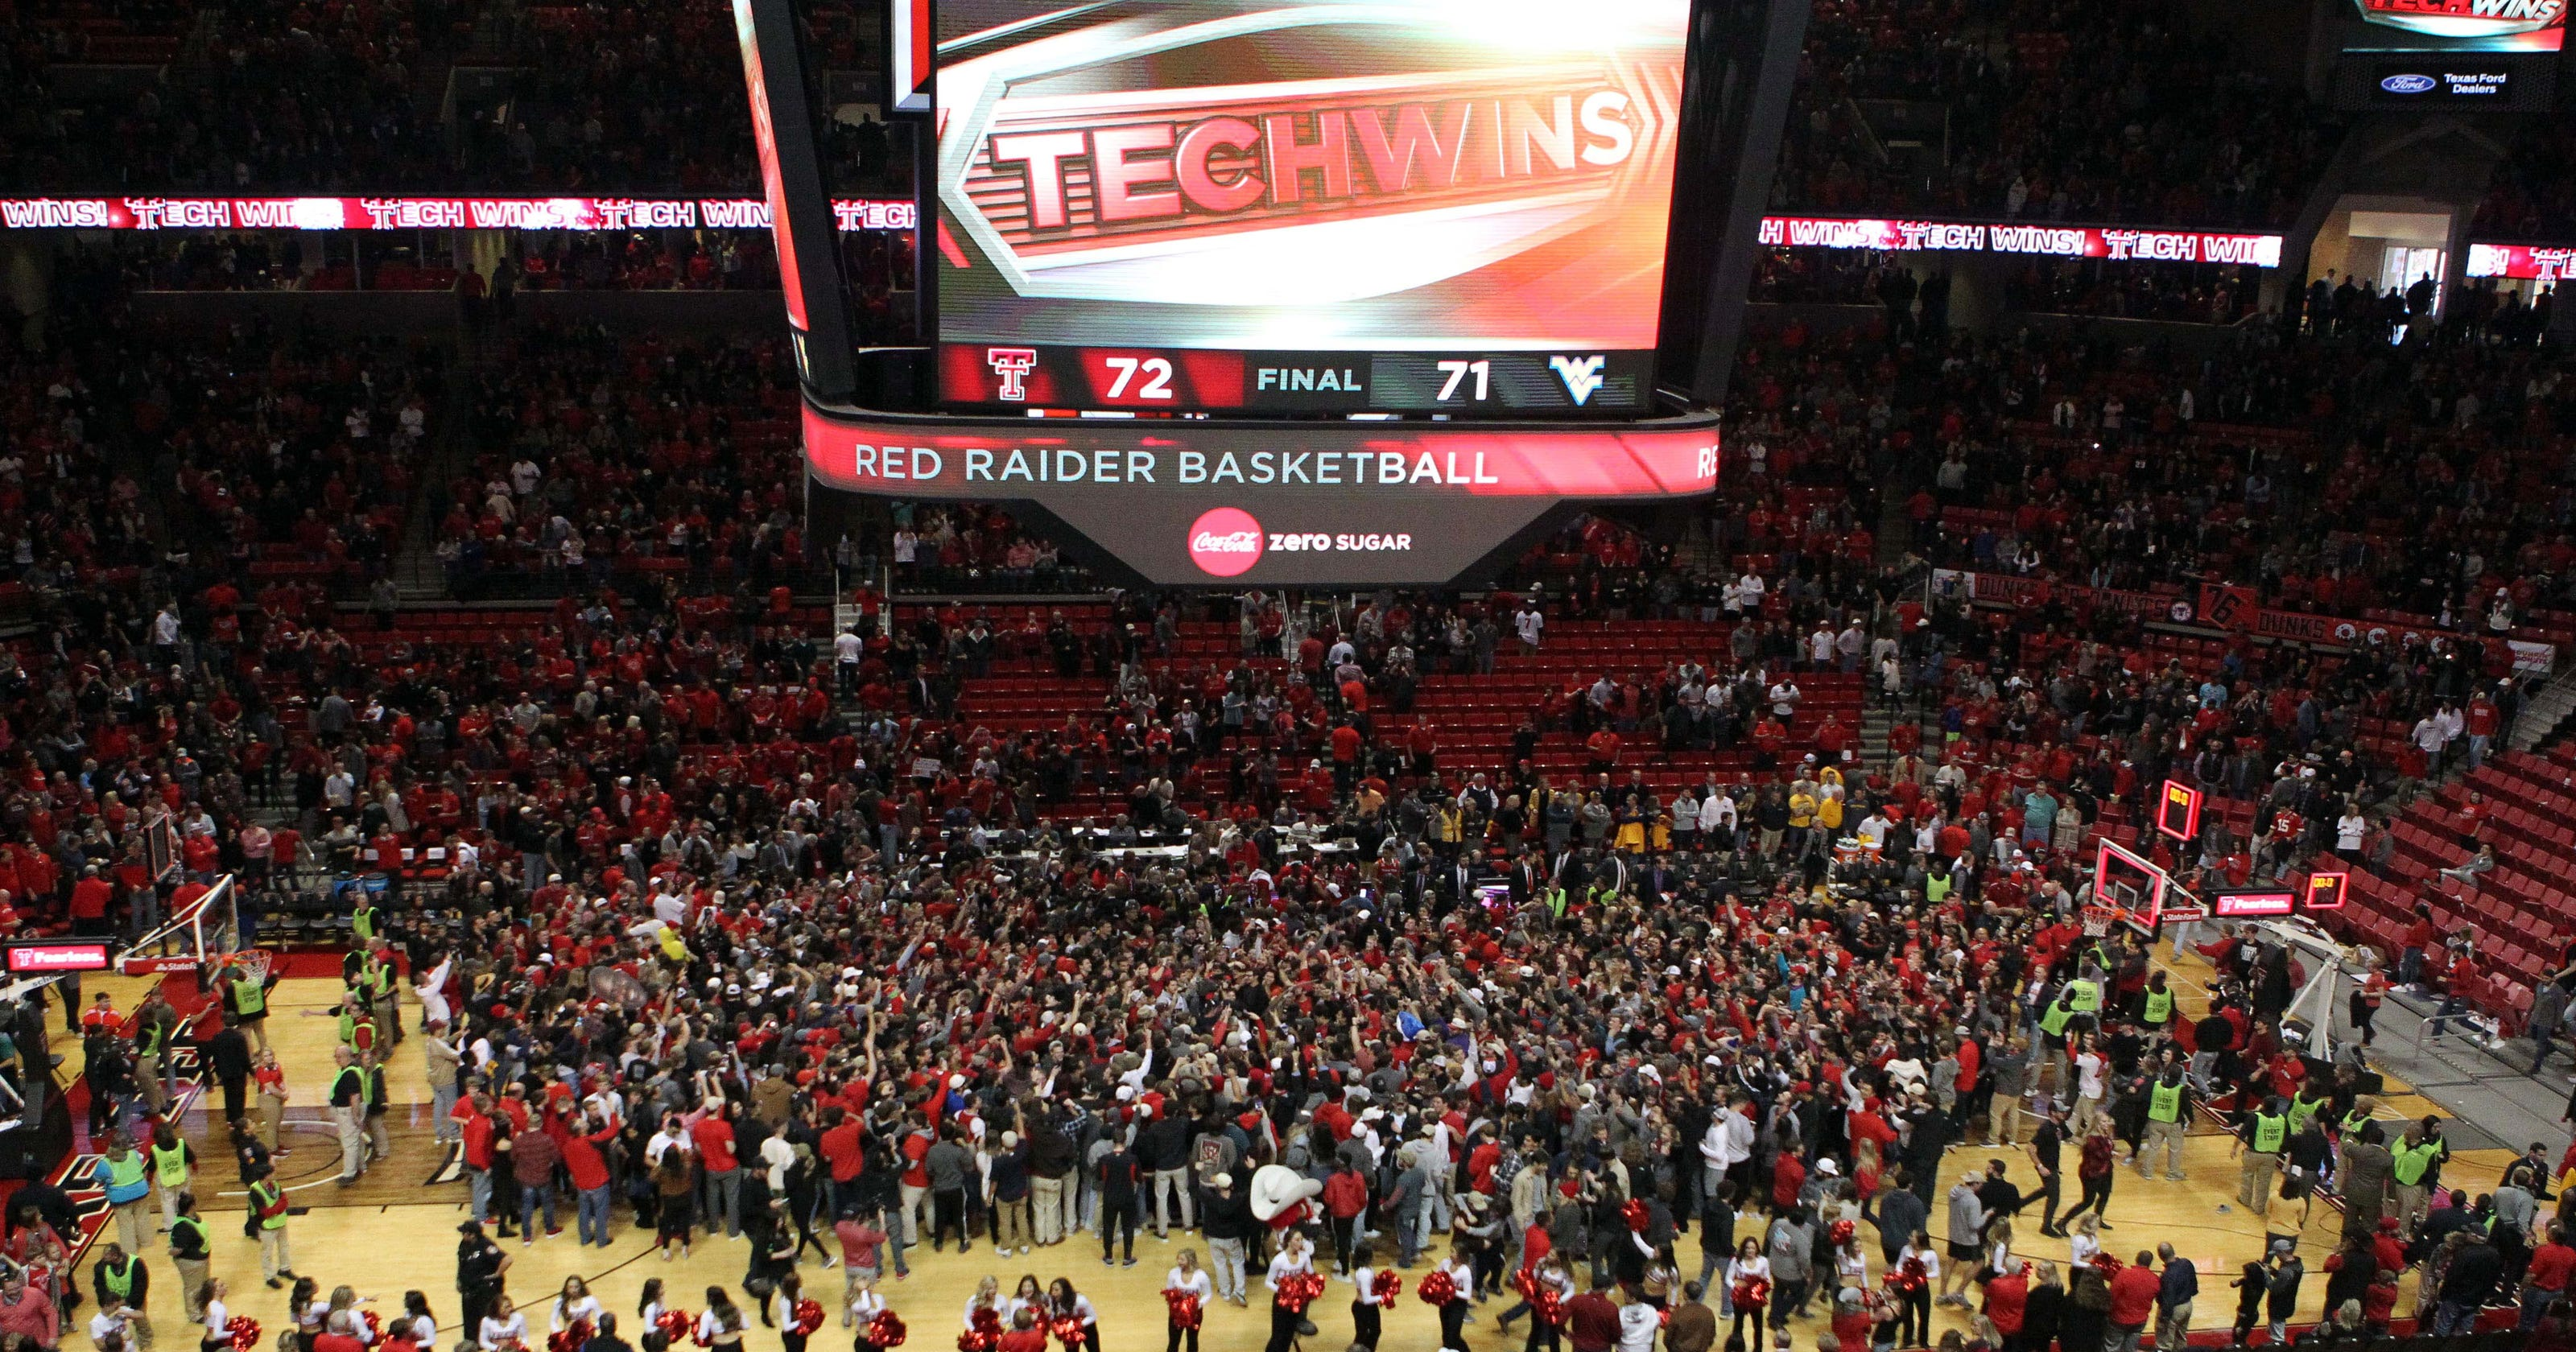 West Virginia reviewing court storming incident in which